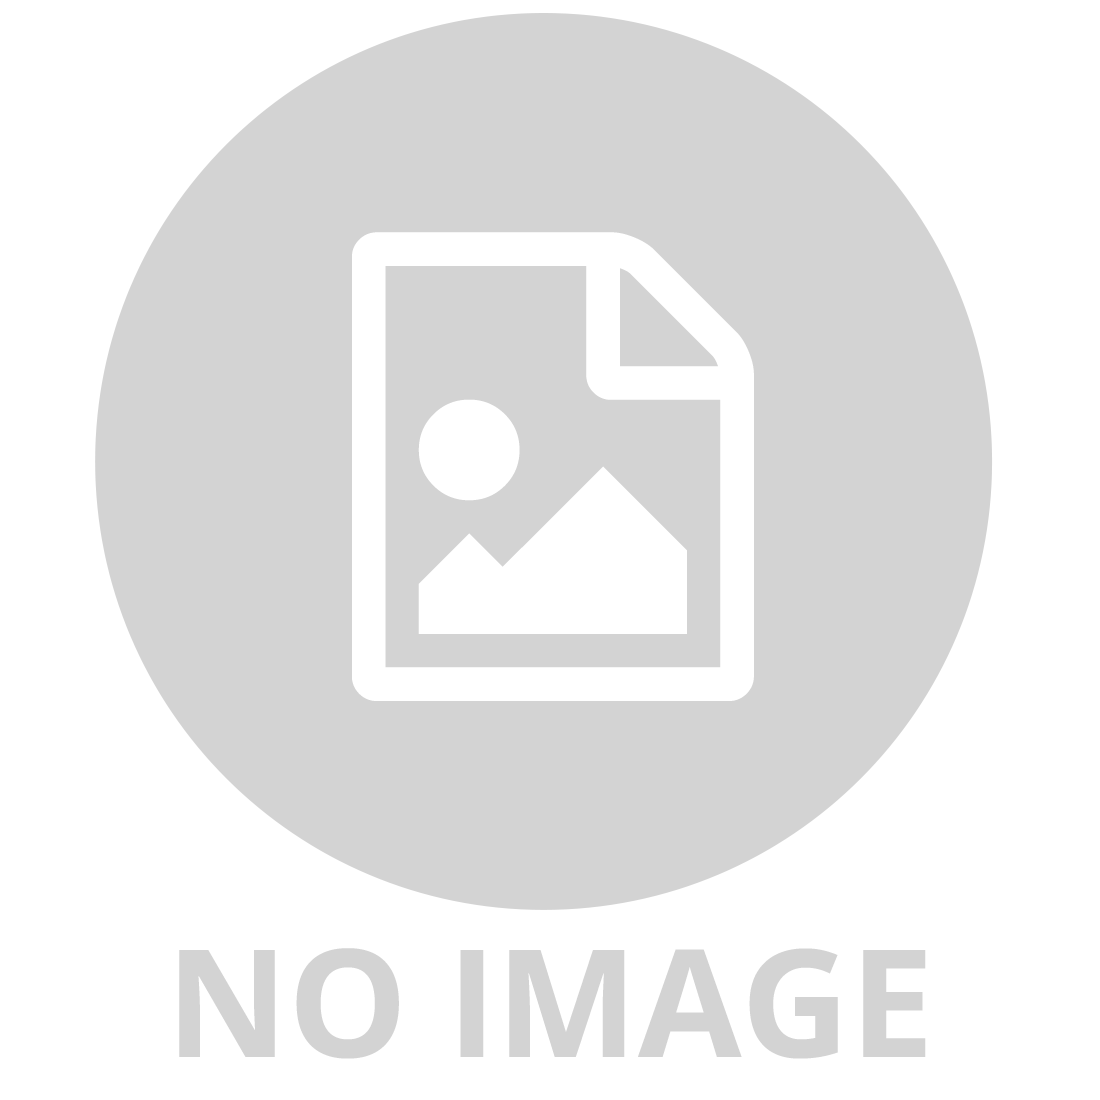 BEANIE BOOS FANTASIA MULTI COLOUR UNICORN